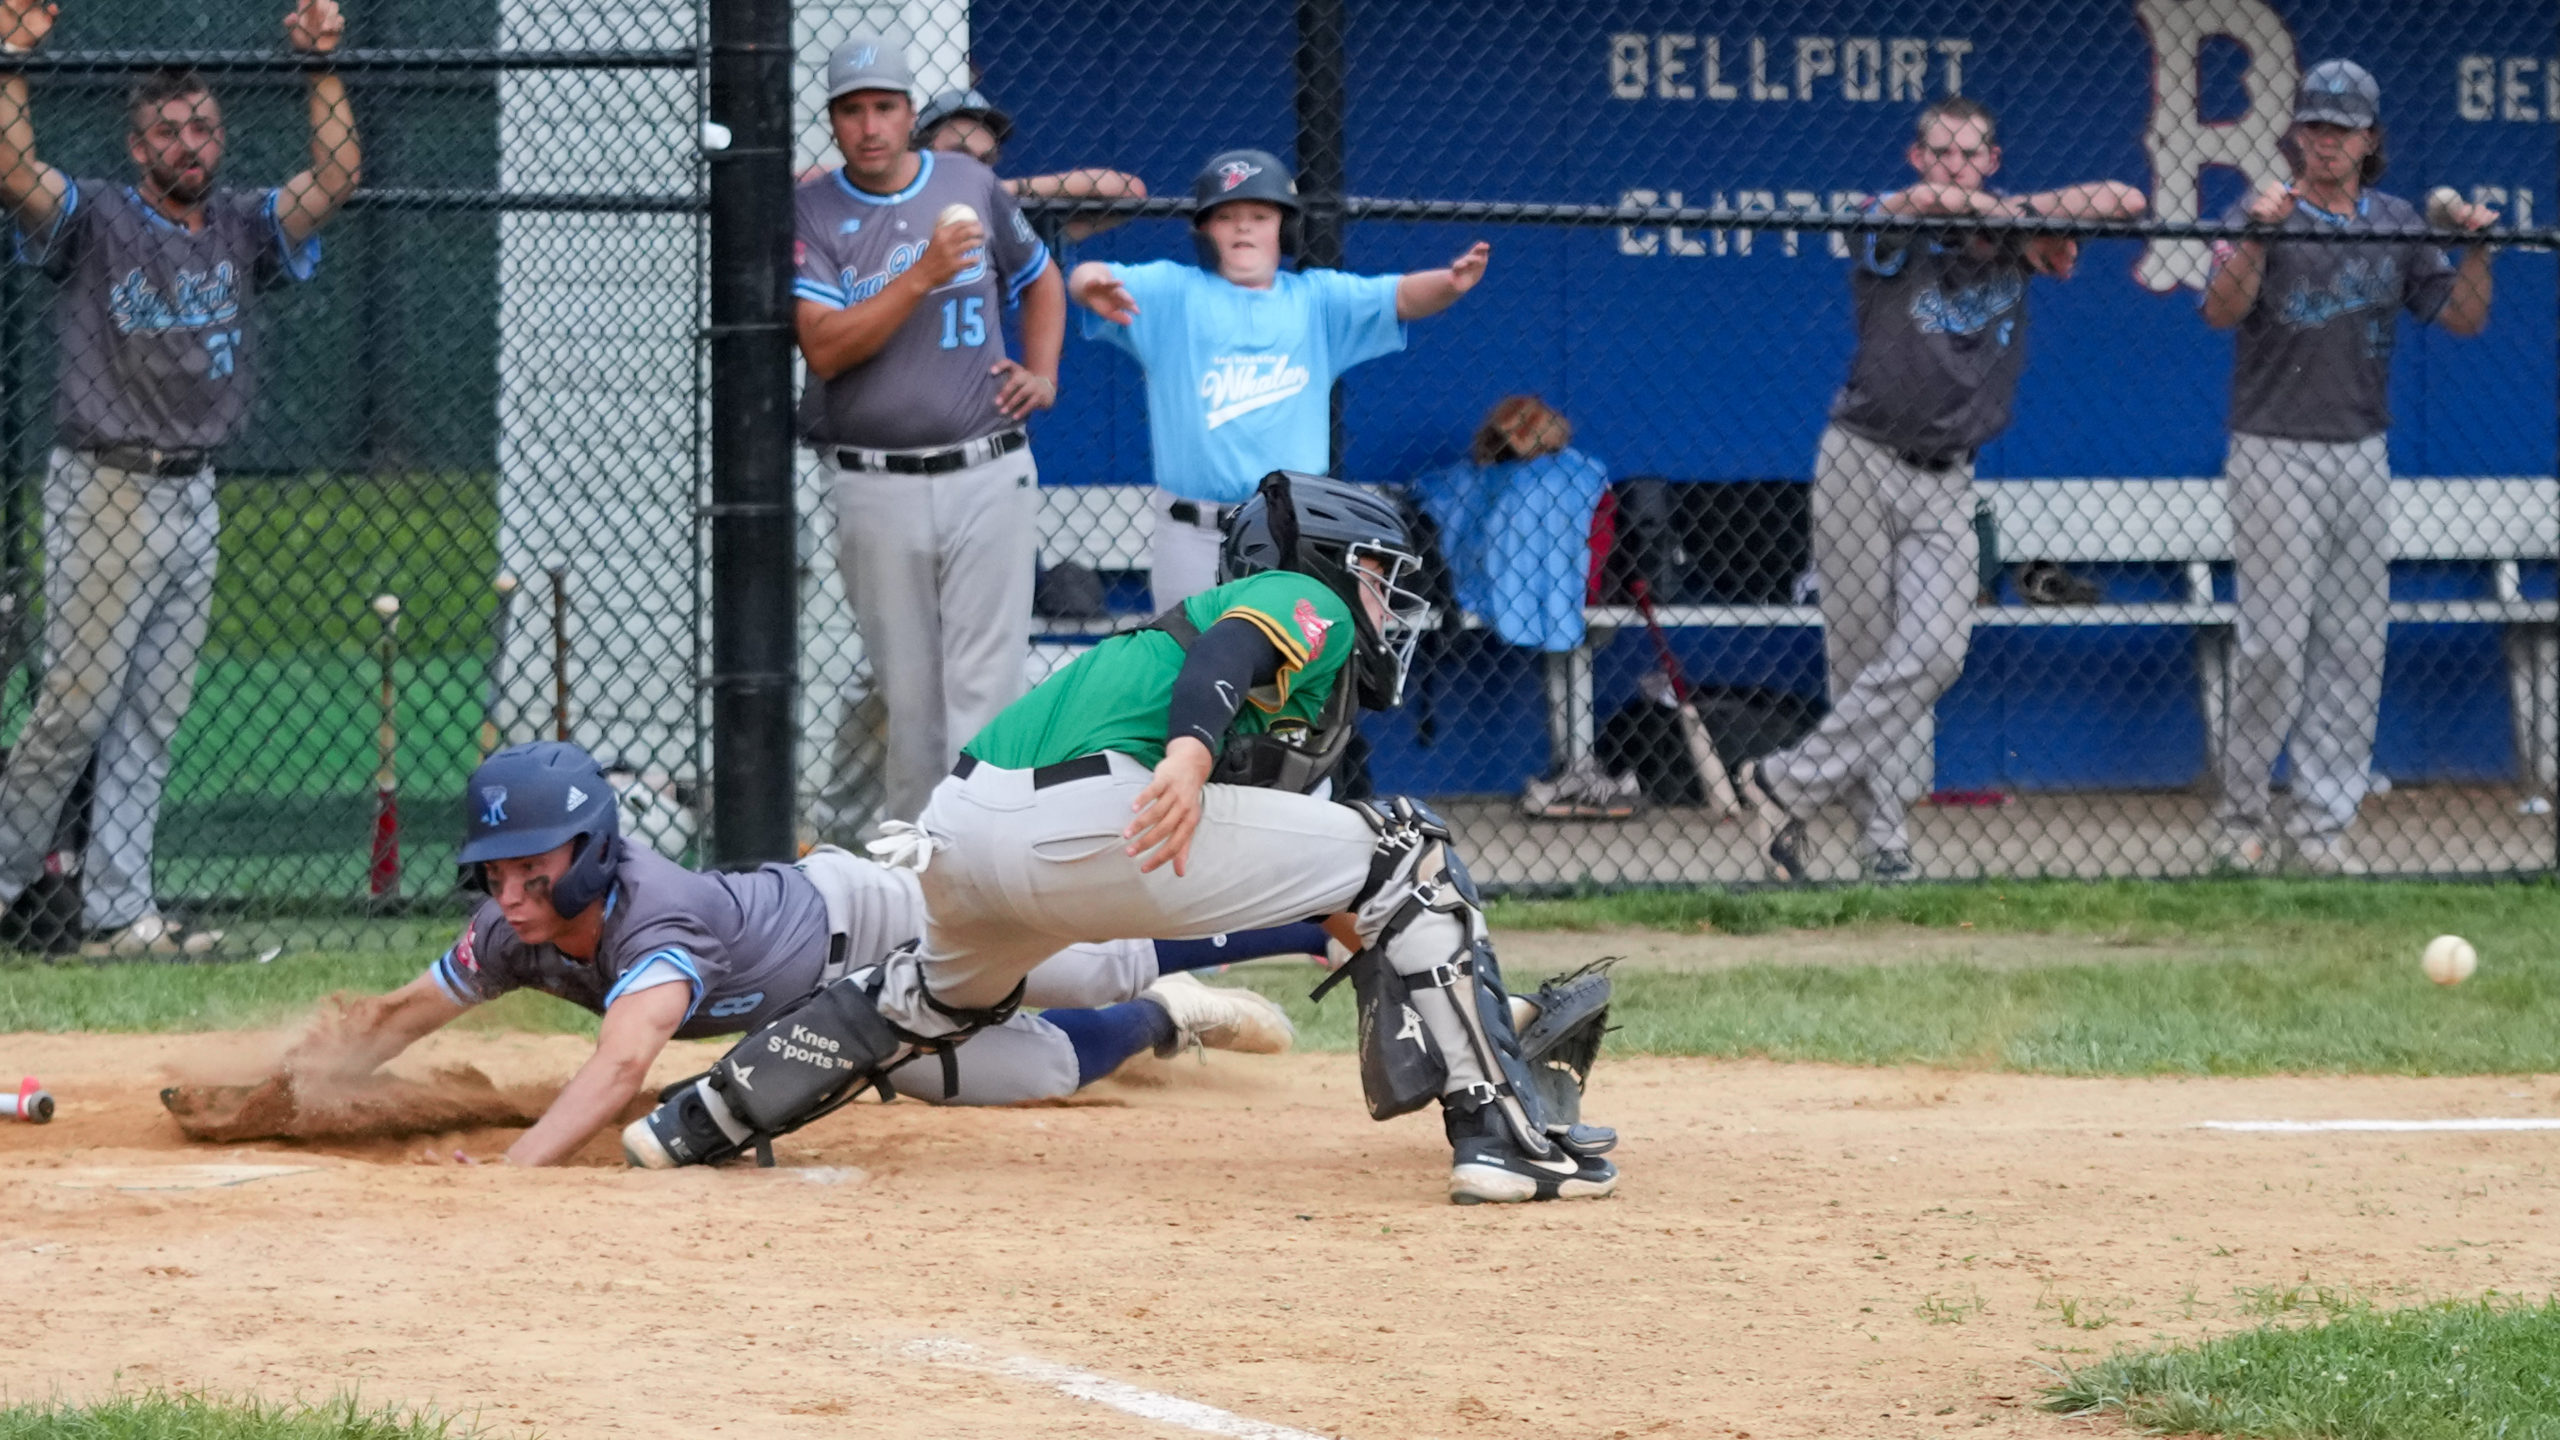 Anthony Panissidi (Rhode Island) scores a key insurance run in the top of the 12th inning to put the Whalers up, 4-2, which wound up being the final score of Thursday's wild card game.